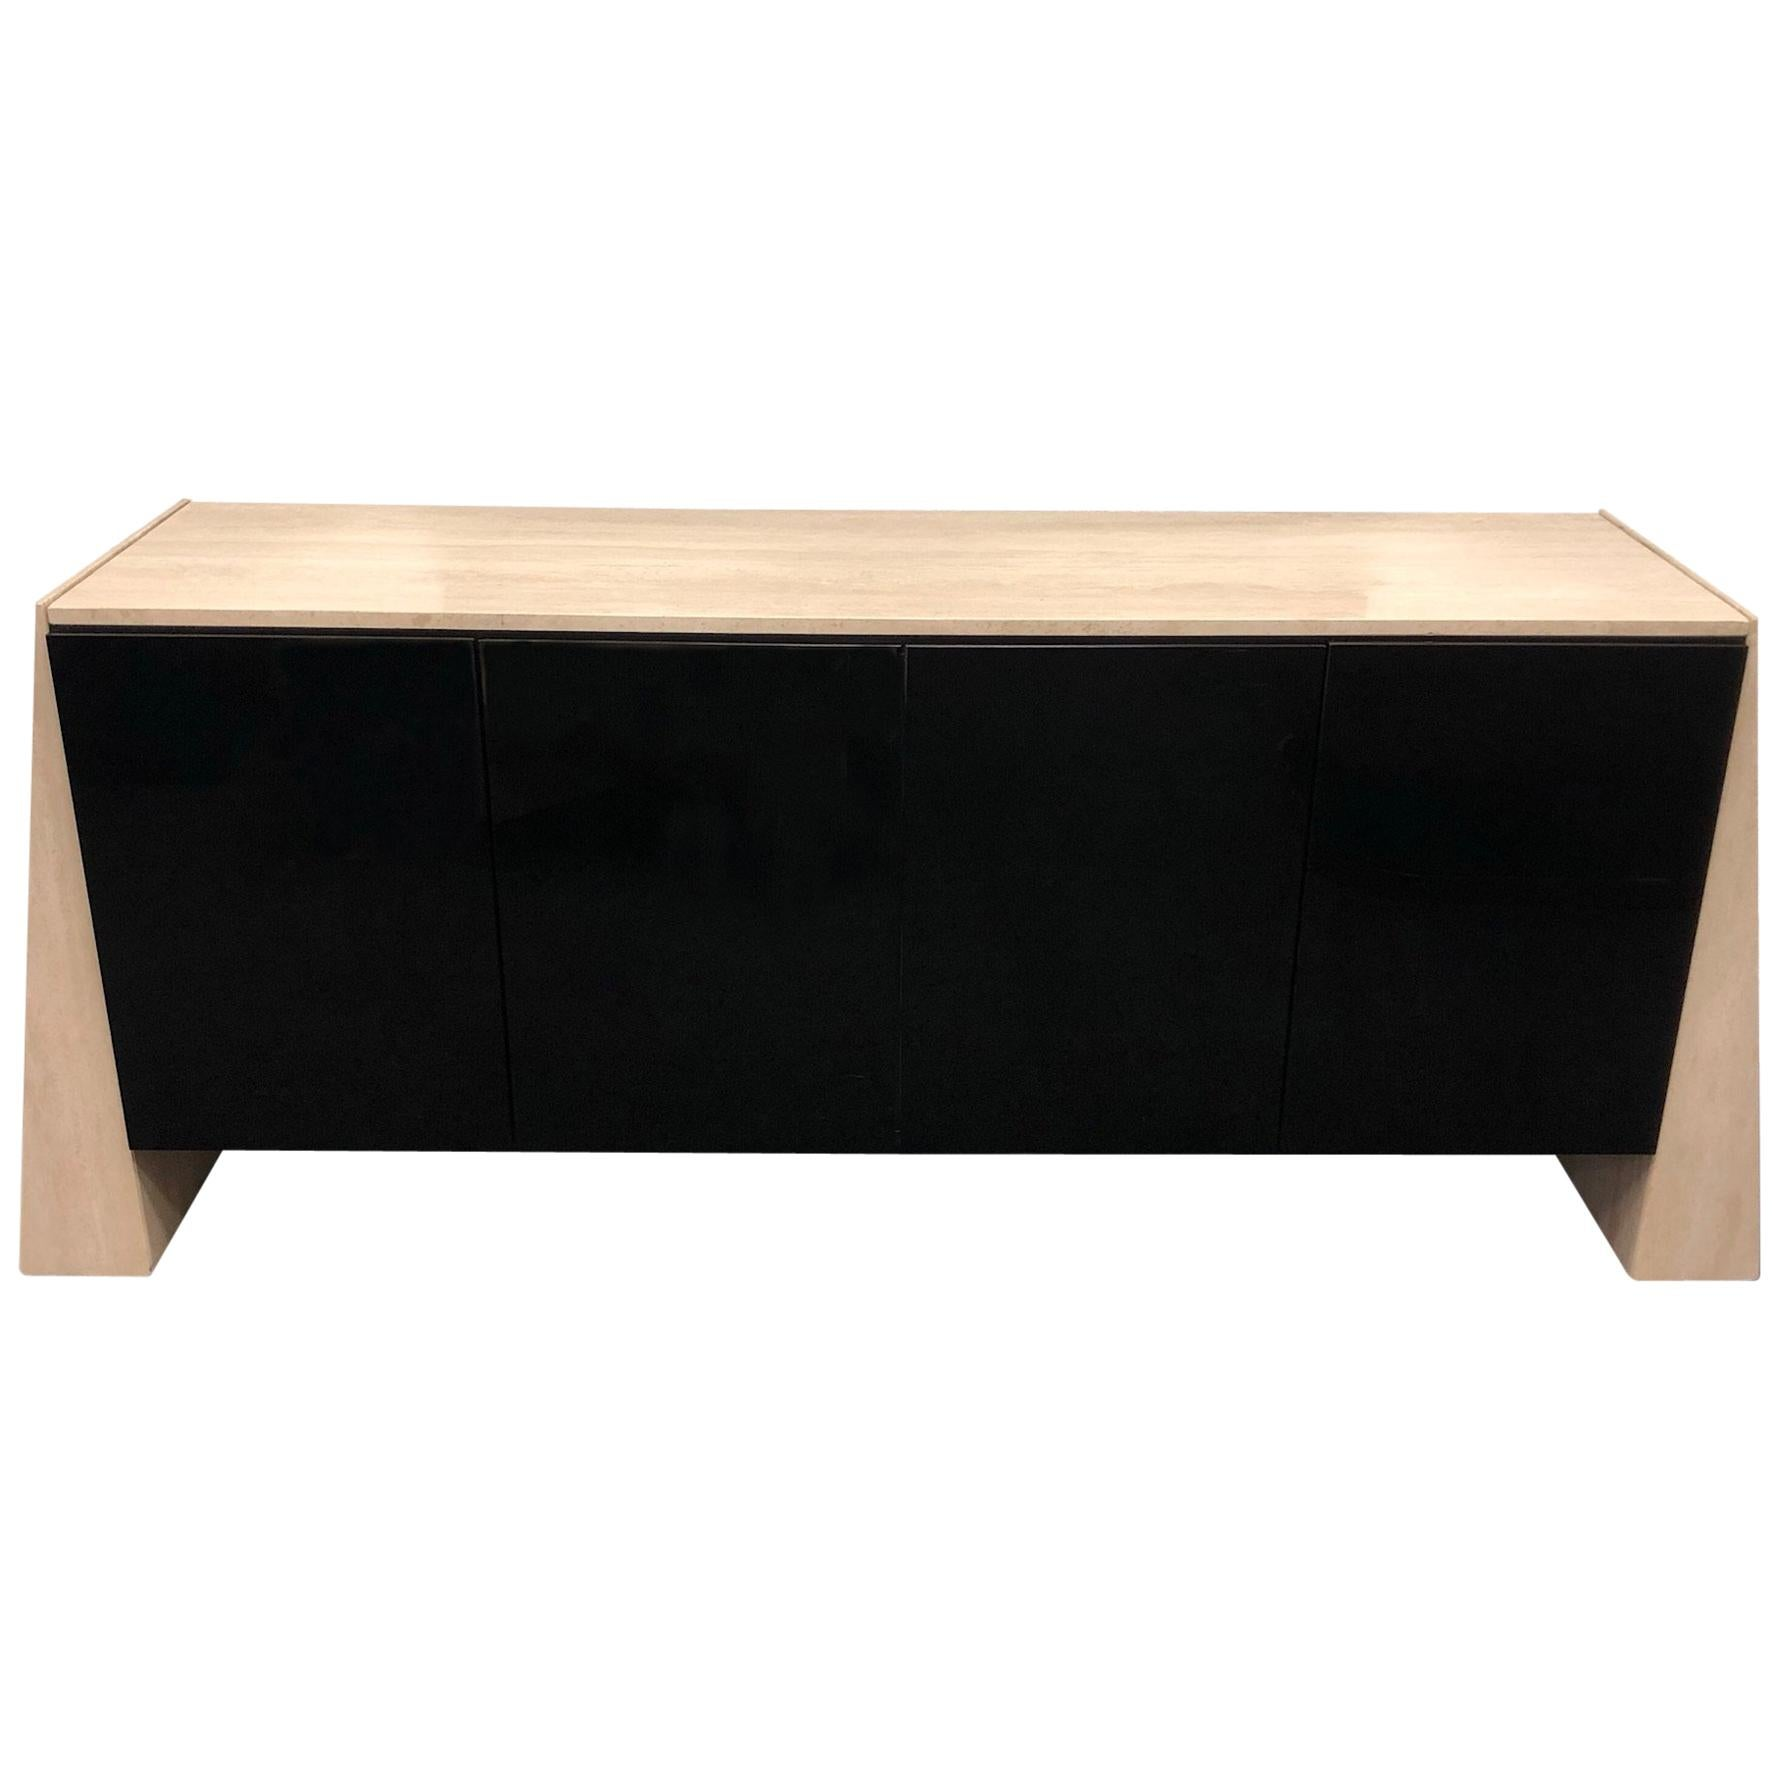 Italian Travertine and Black Lacquered Credenza